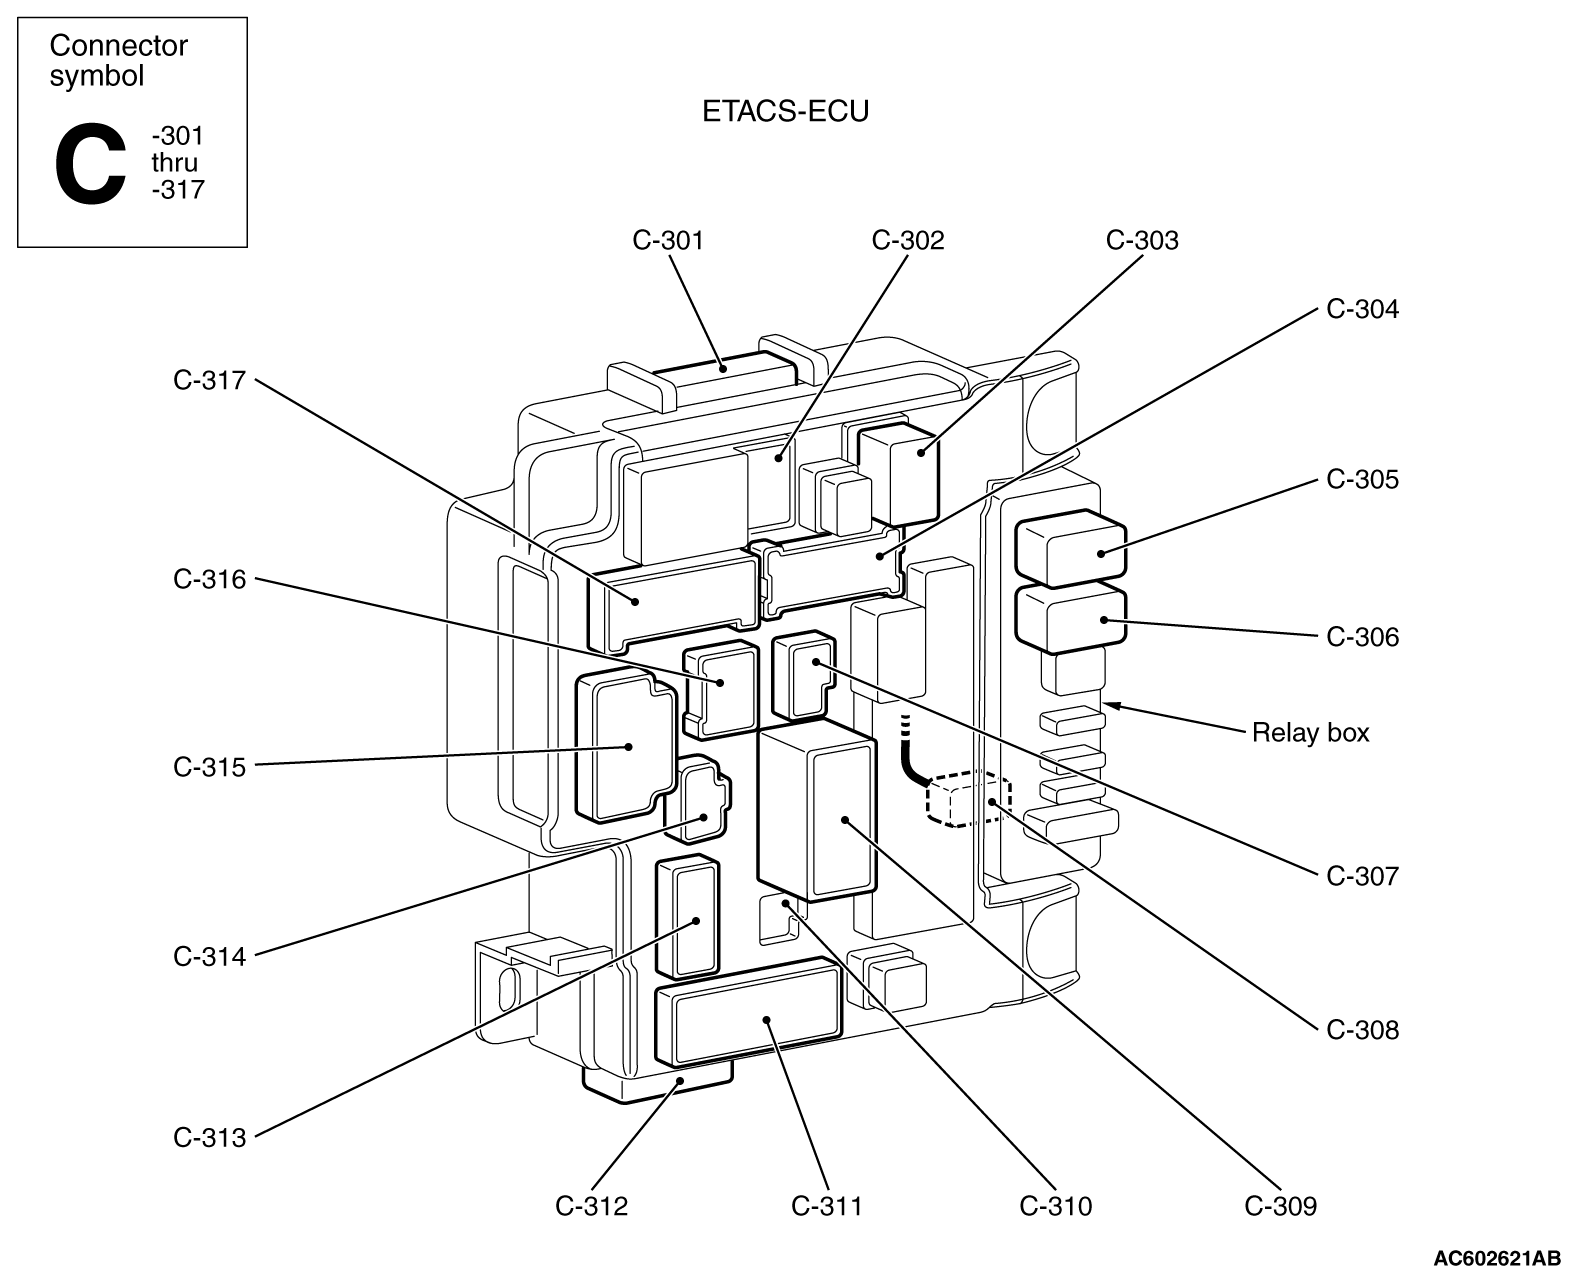 2014 Nissan Versa Fuse Diagram - Wiring Diagrams on